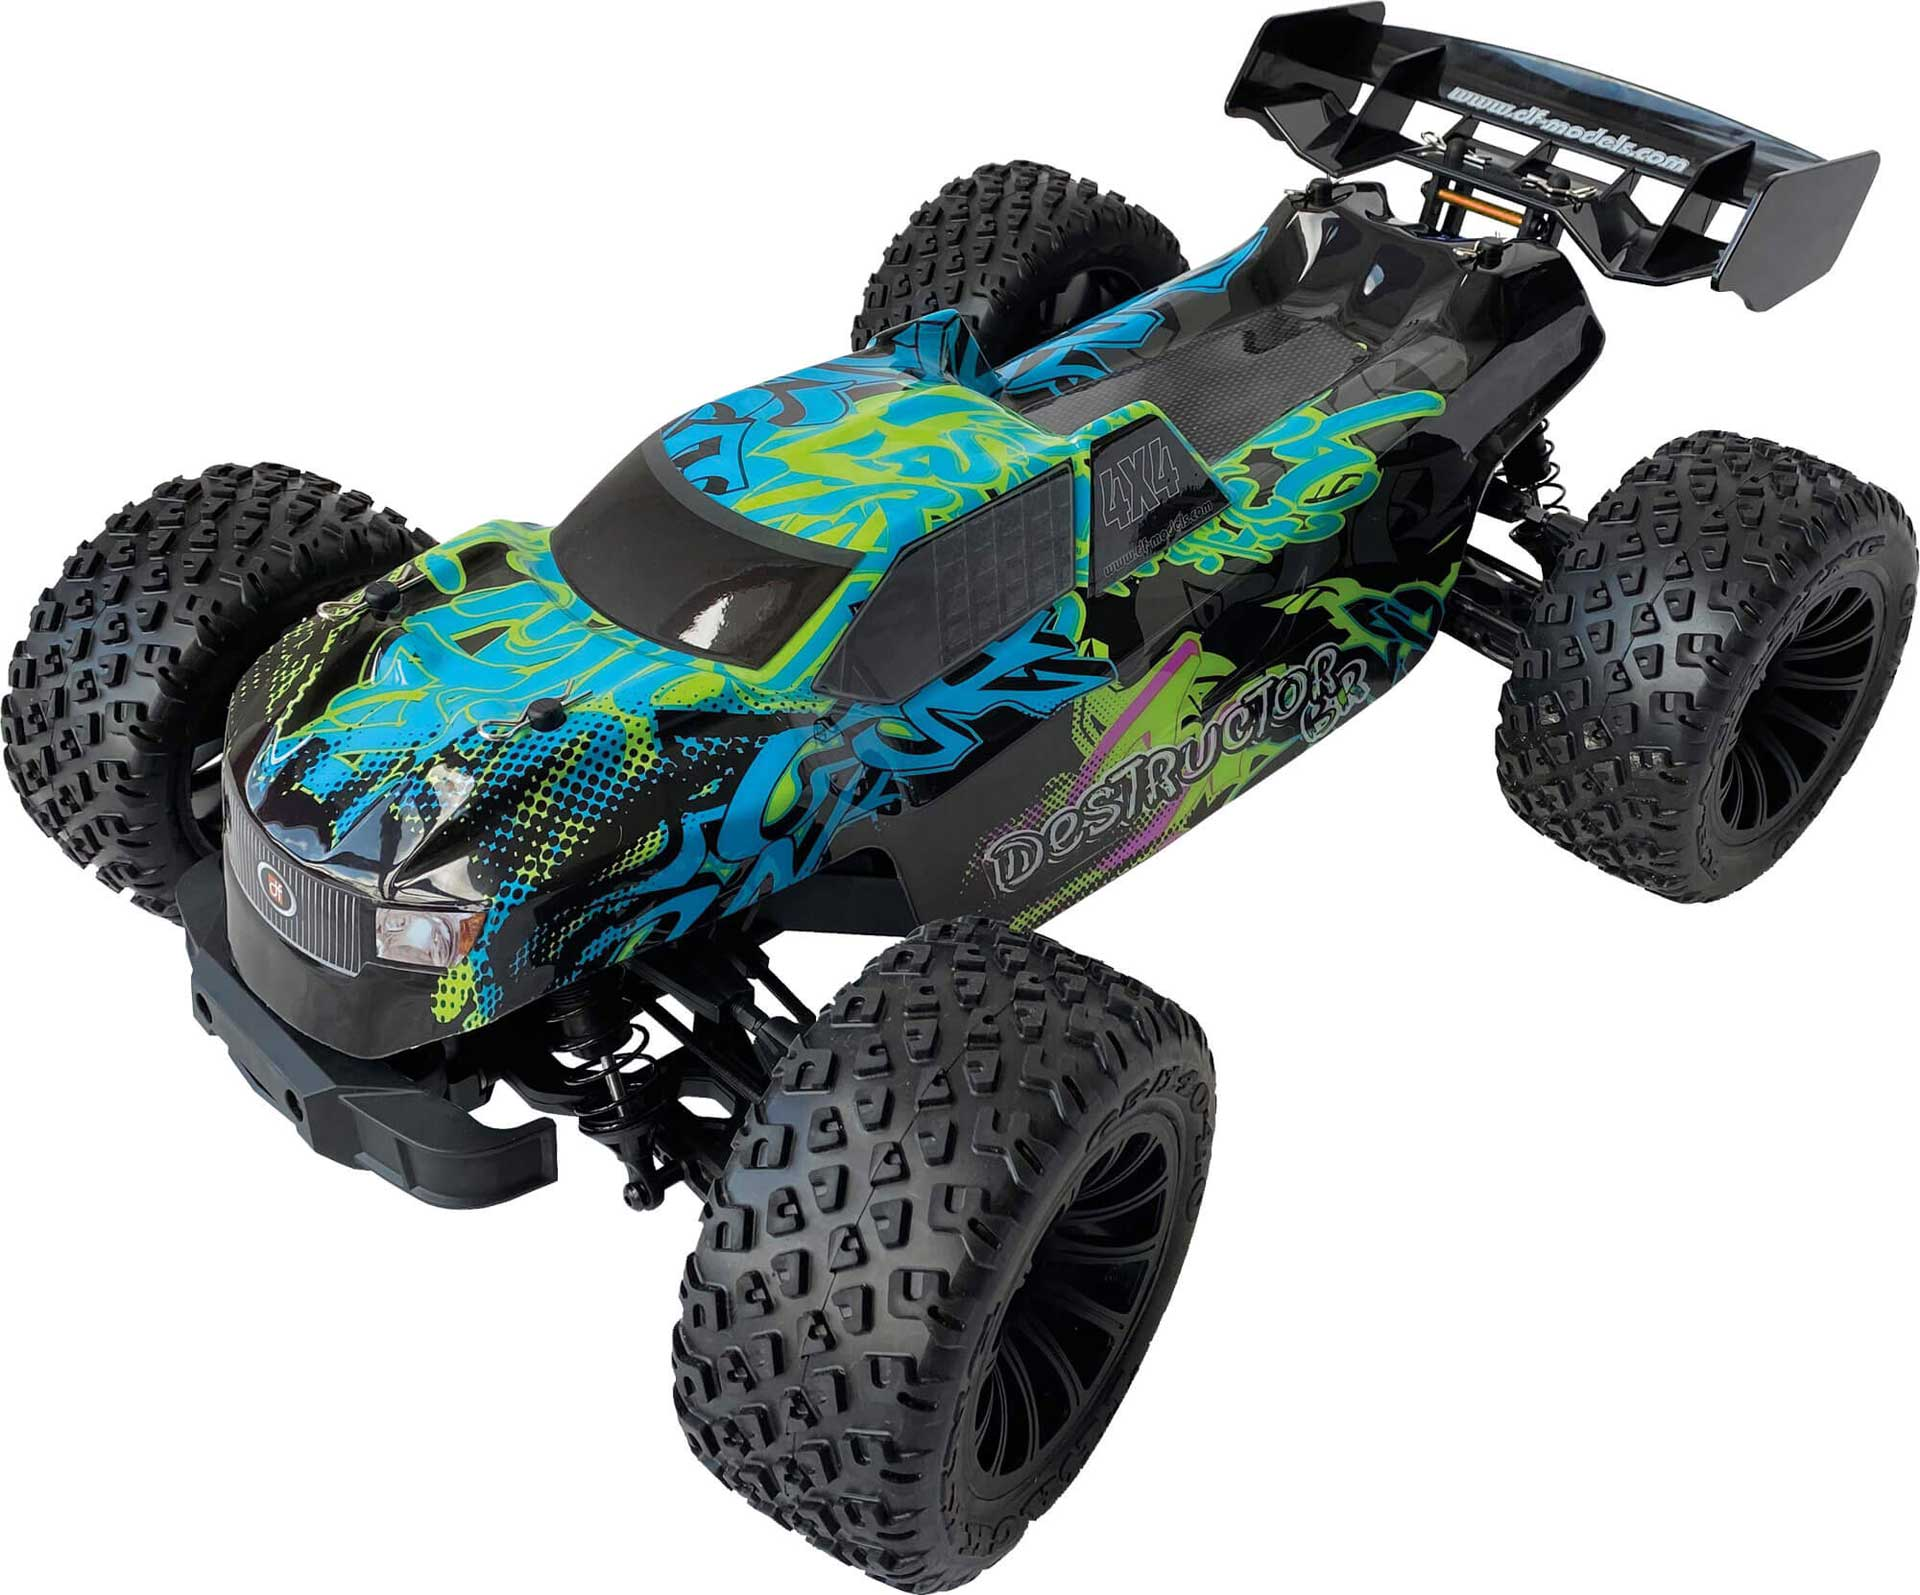 DRIVE & FLY MODELS Destructor Brushed Truggy 1/8 EP RTR